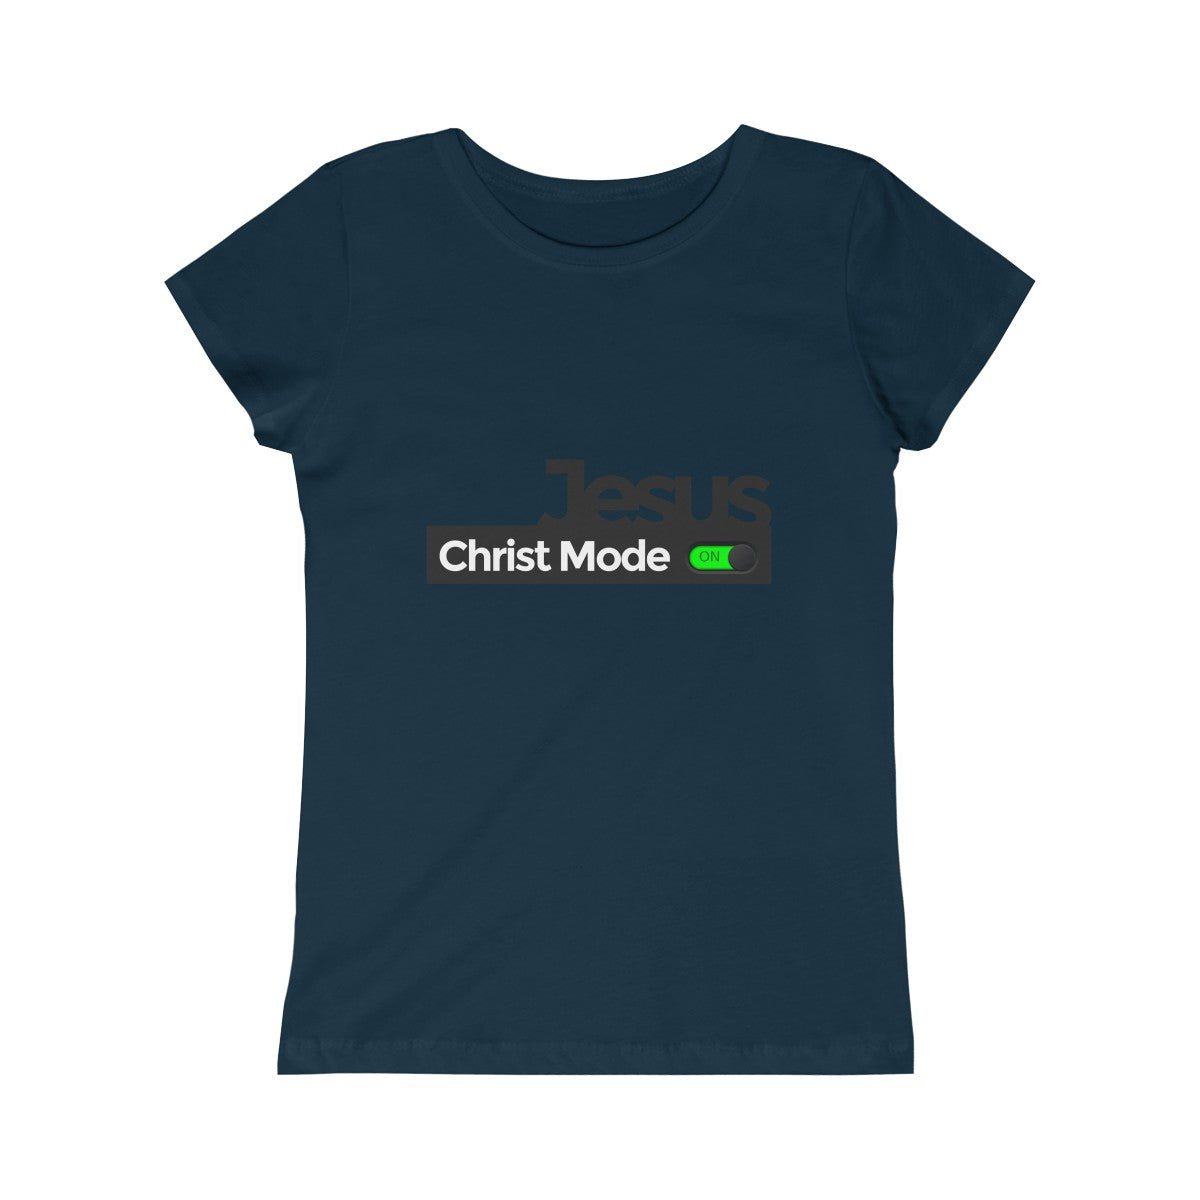 Jesus Christ Mode On - Girls Princess Tee